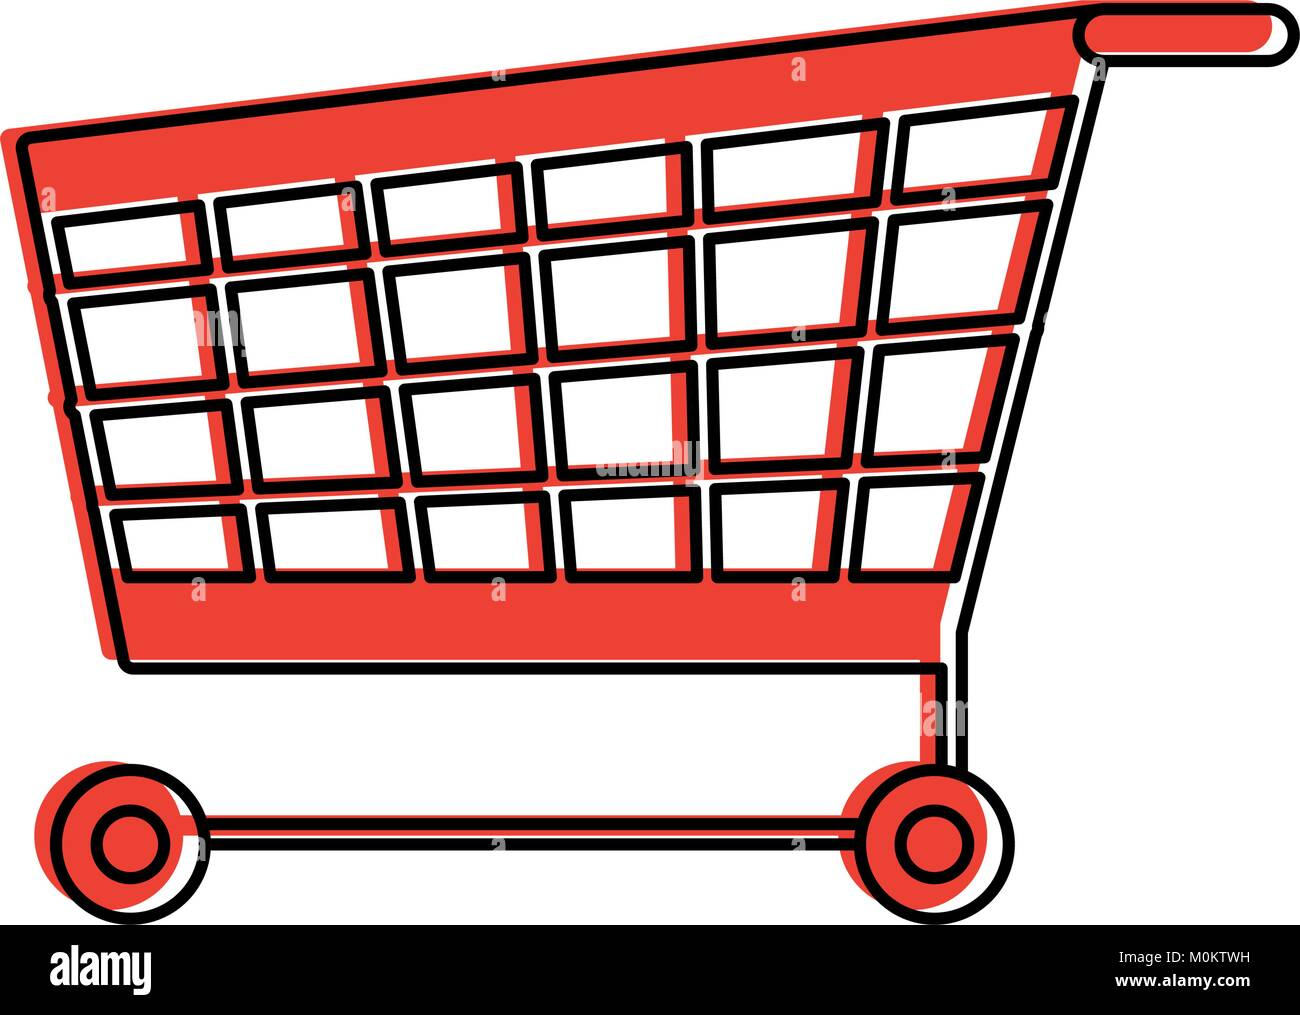 Shopping cart isolated - Stock Vector